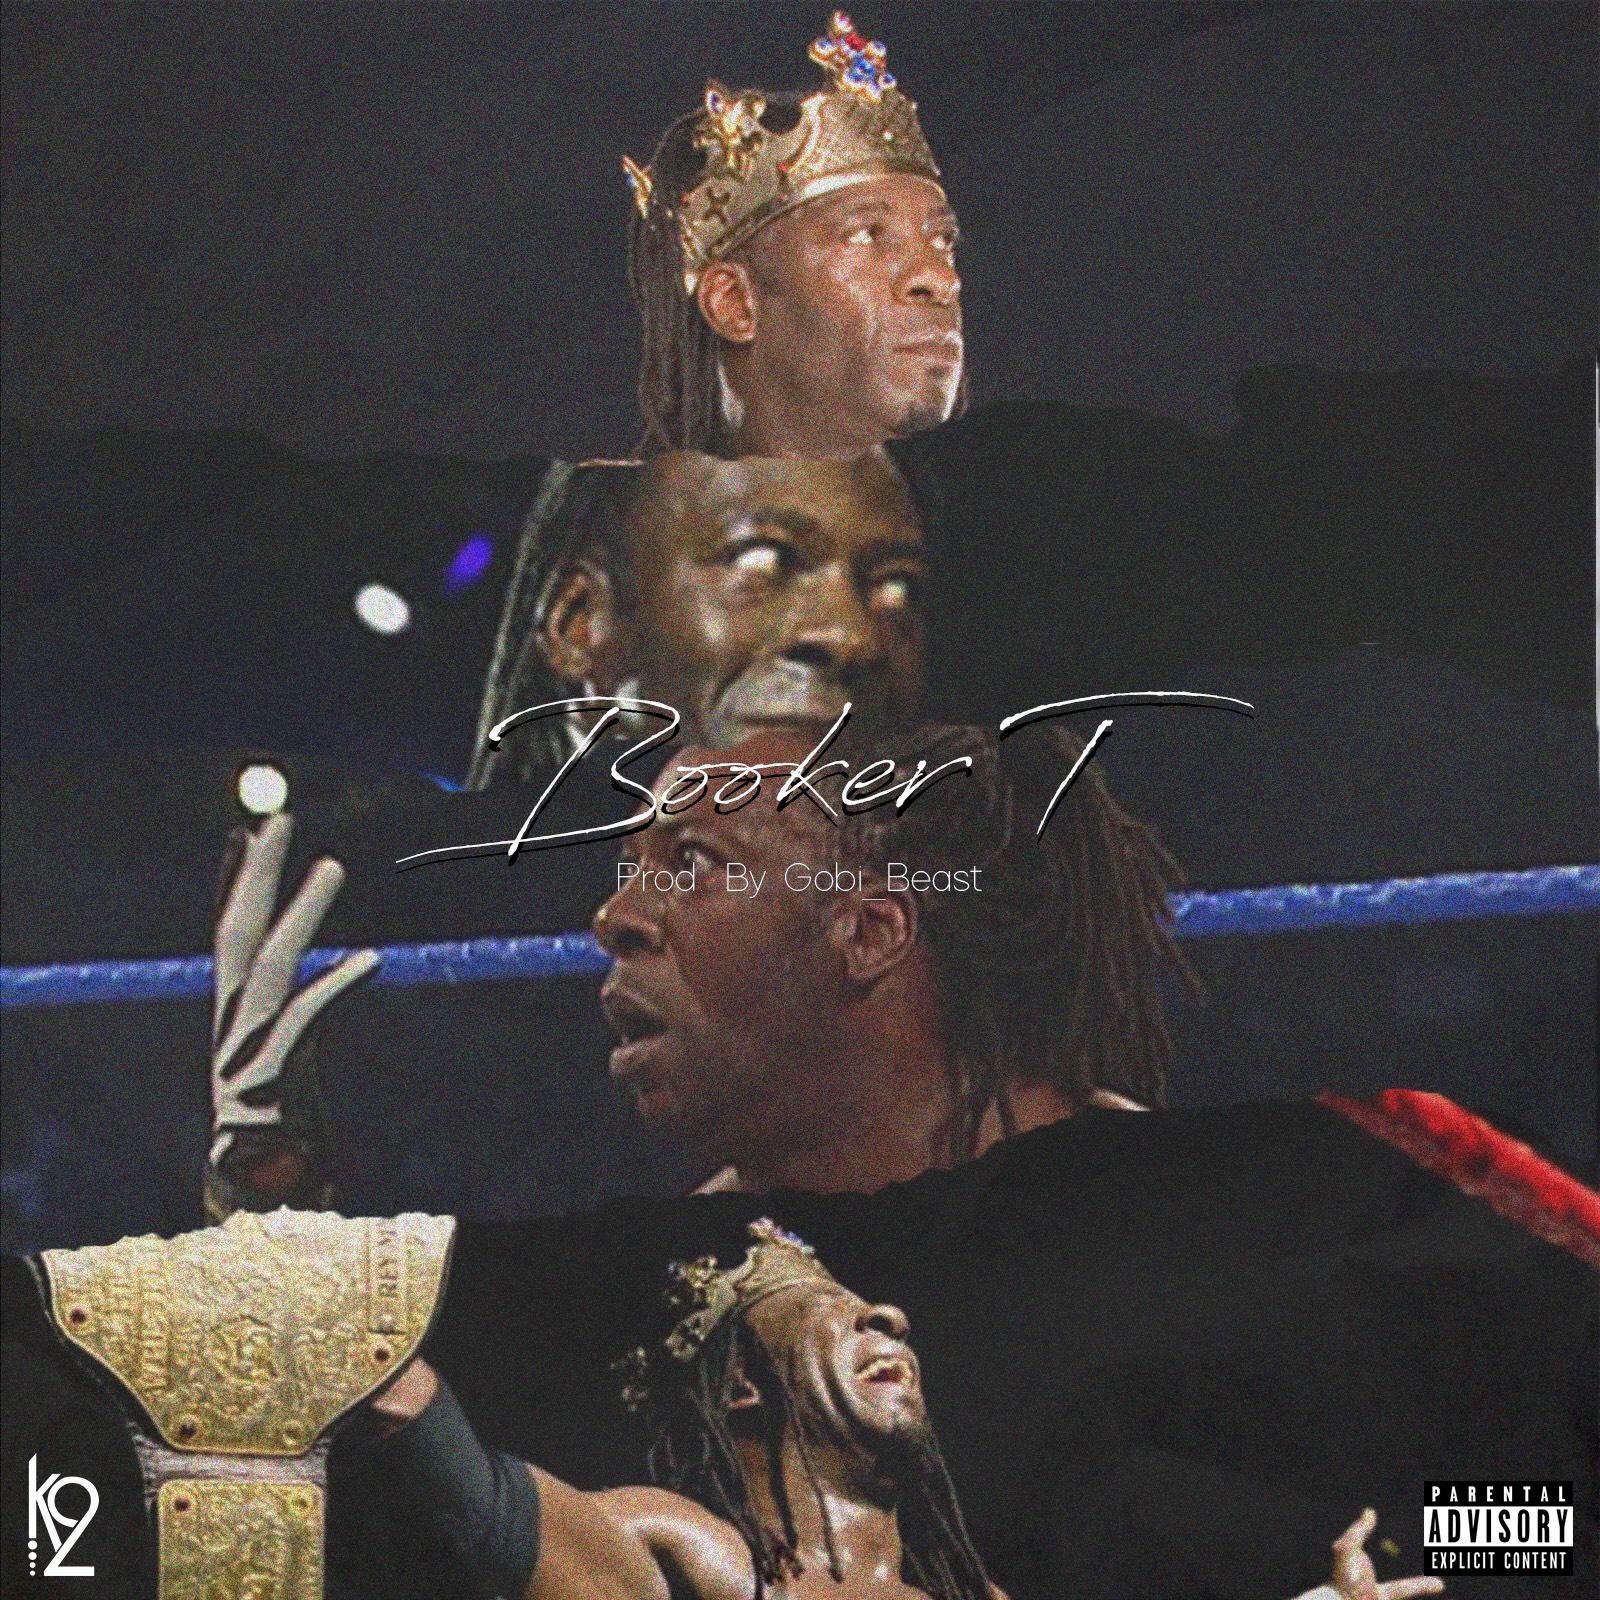 K2 Drops New 'Booker T' Banger [Listen] IMG 2839